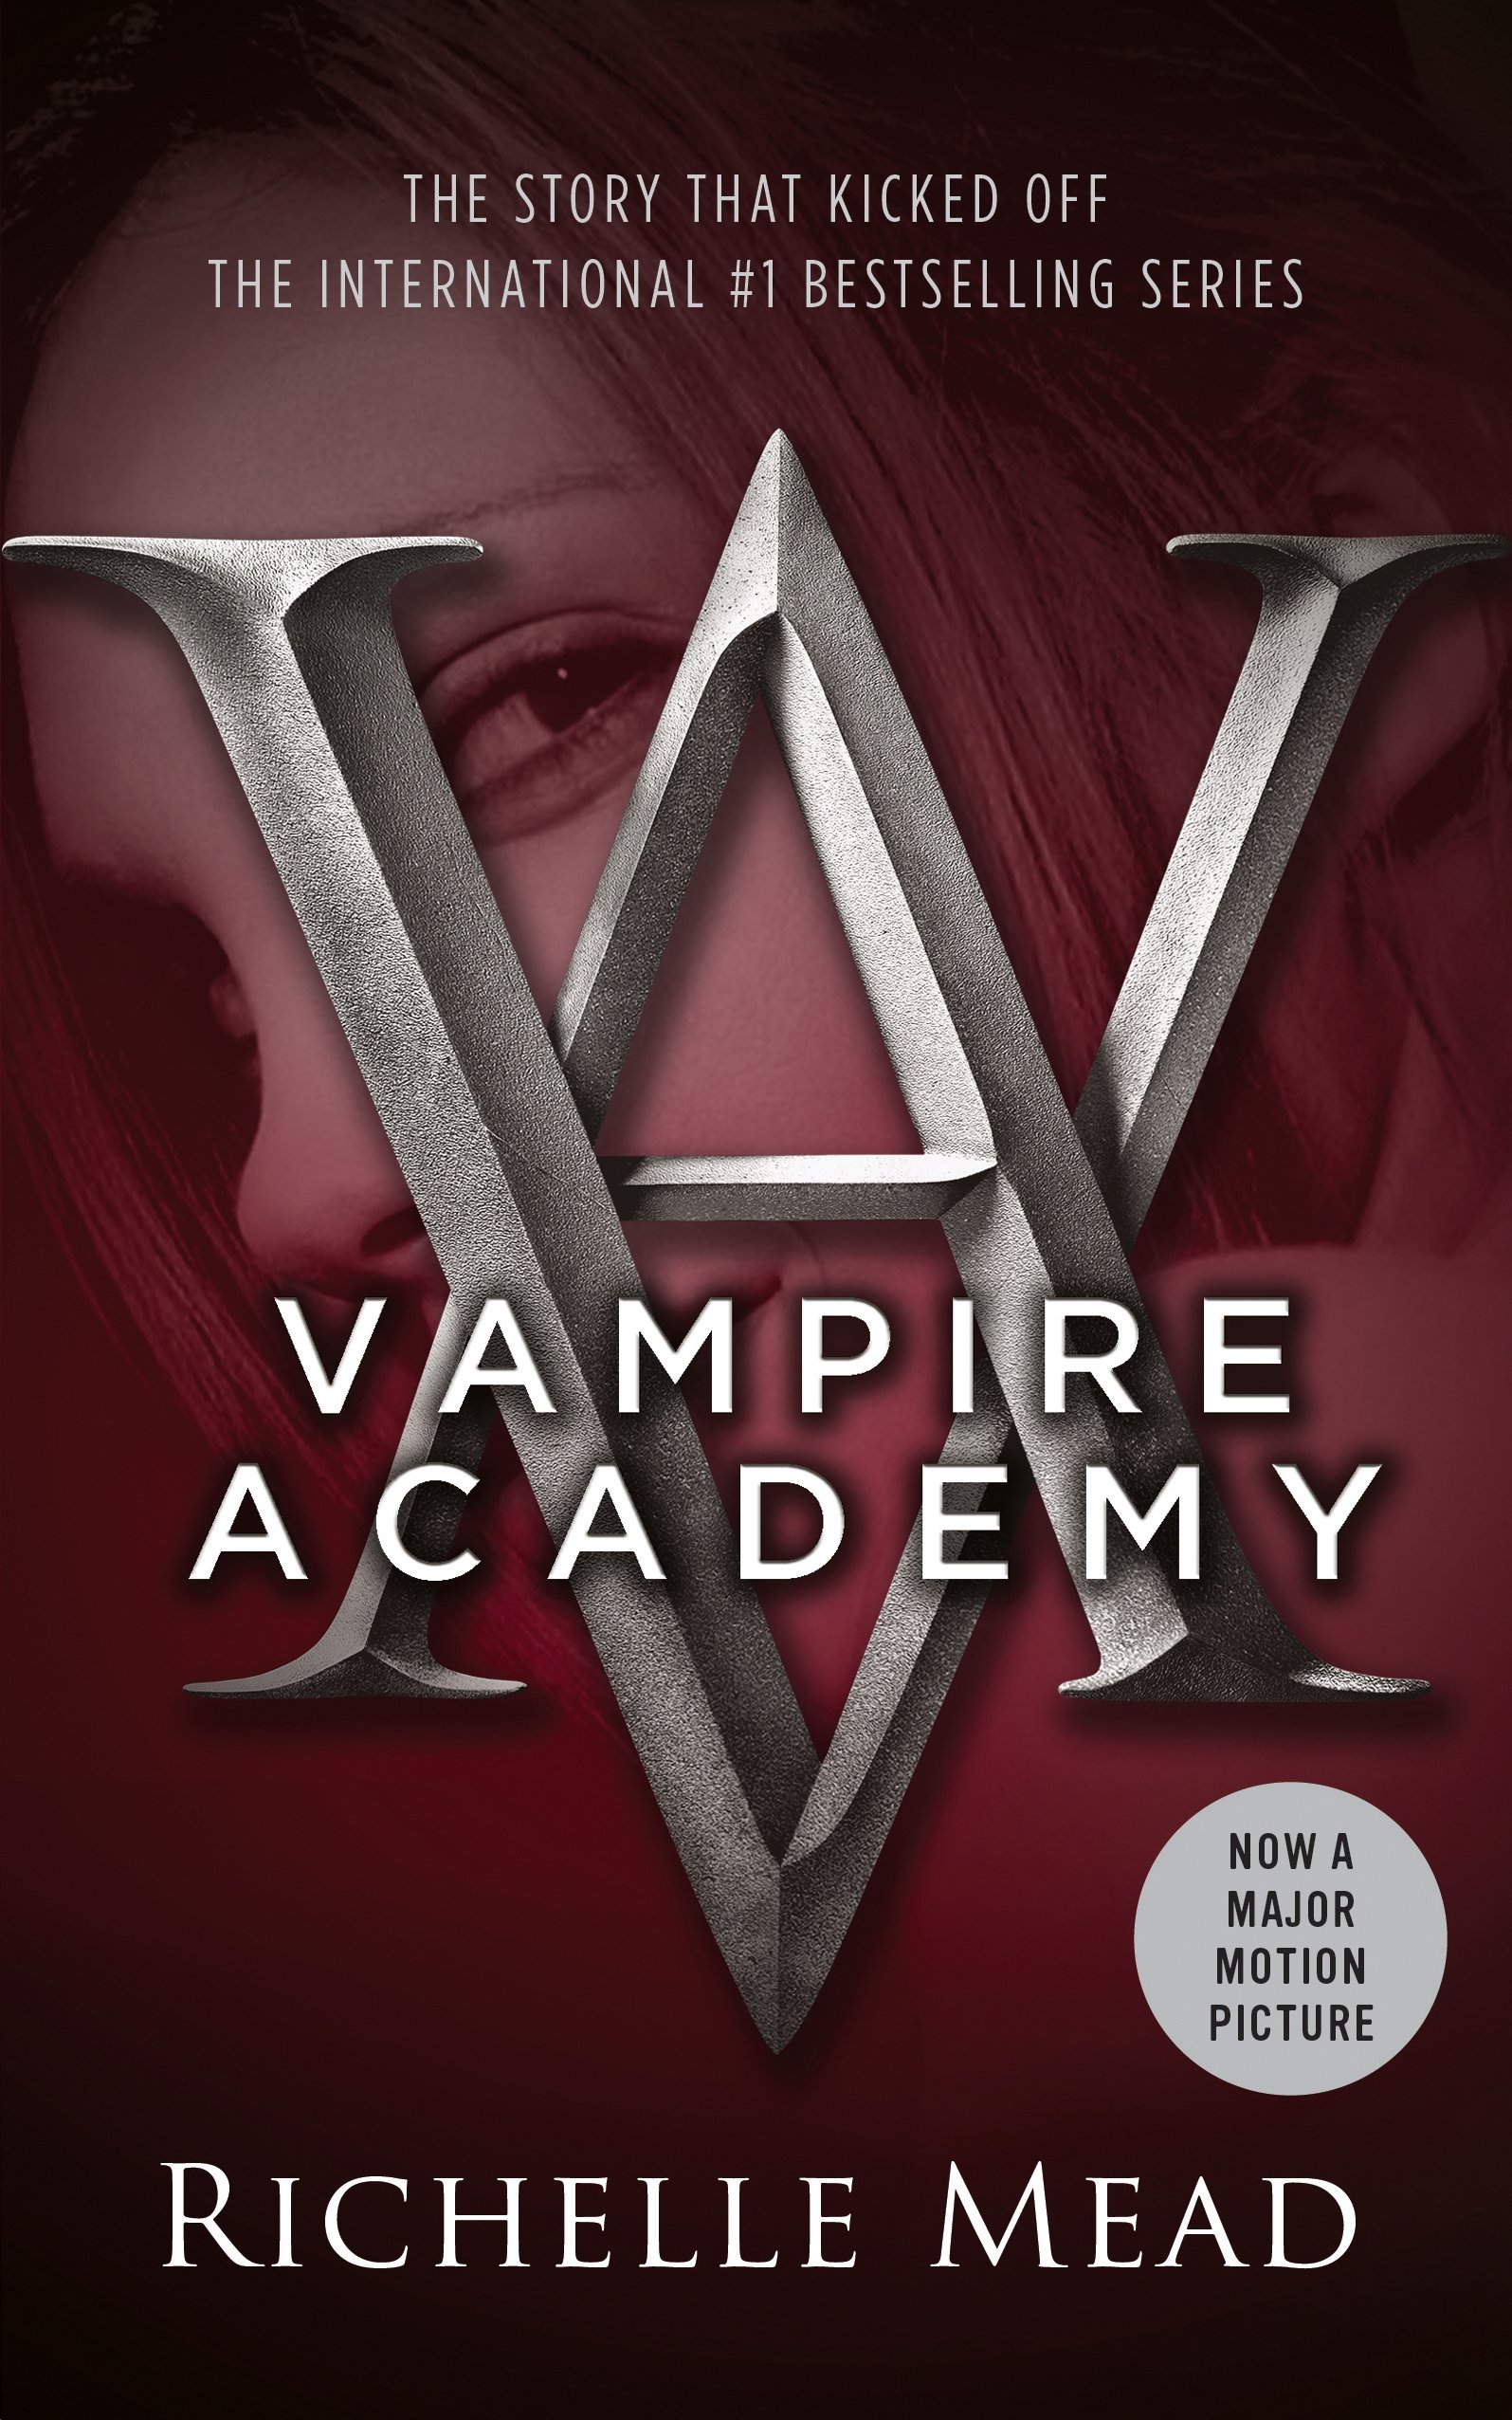 Vampire Academy: Richelle Mead: 9781595141743: Amazon.com: Books